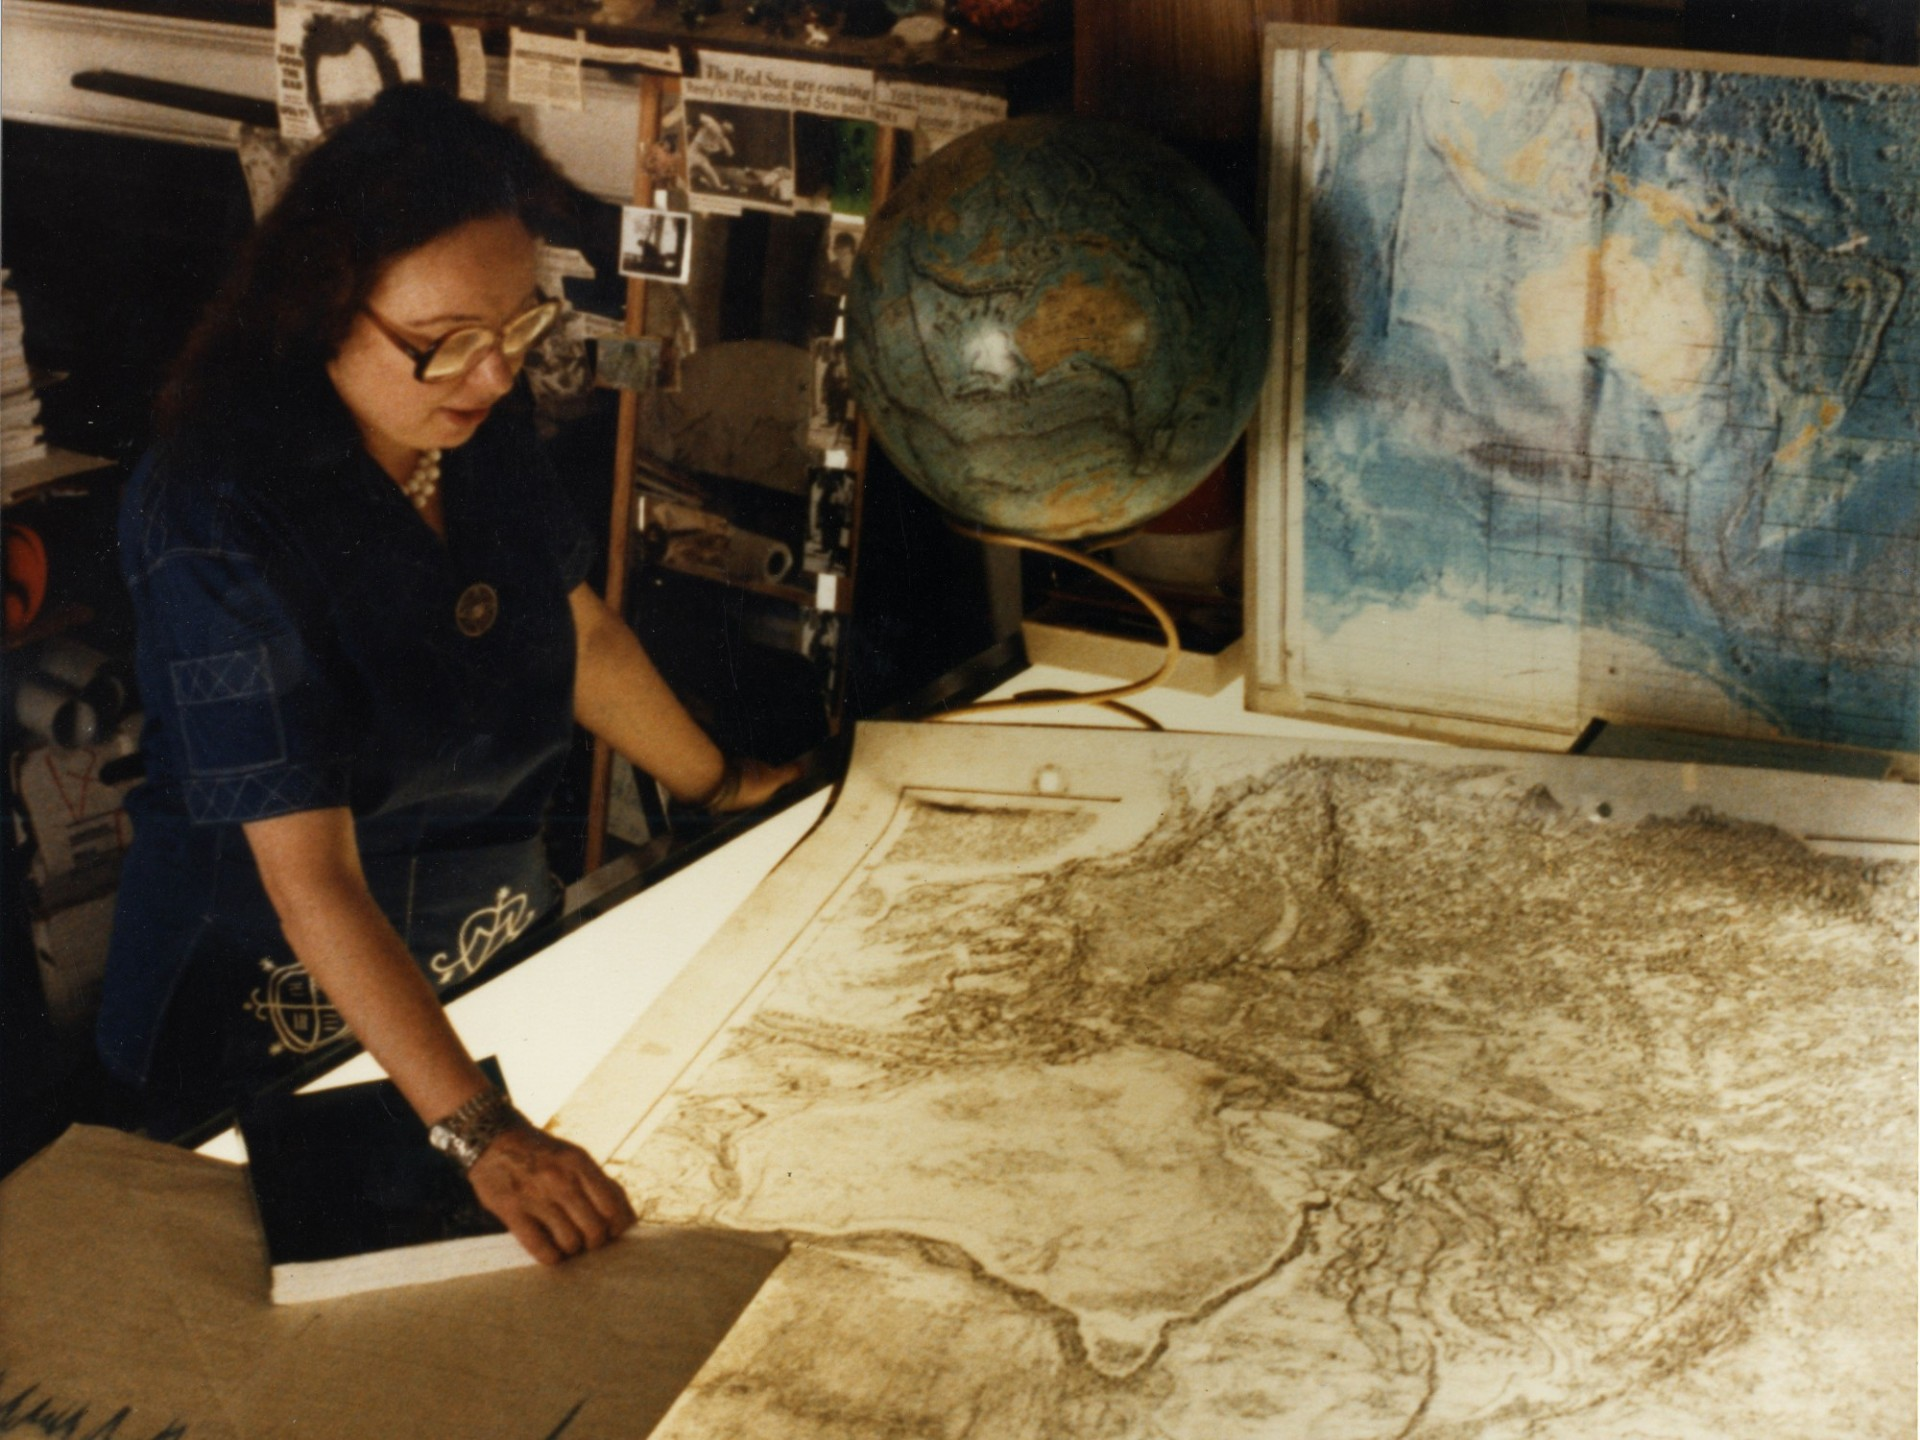 State of the Planet - Lamont's Marie Tharp: She Drew the Maps That Shook the World